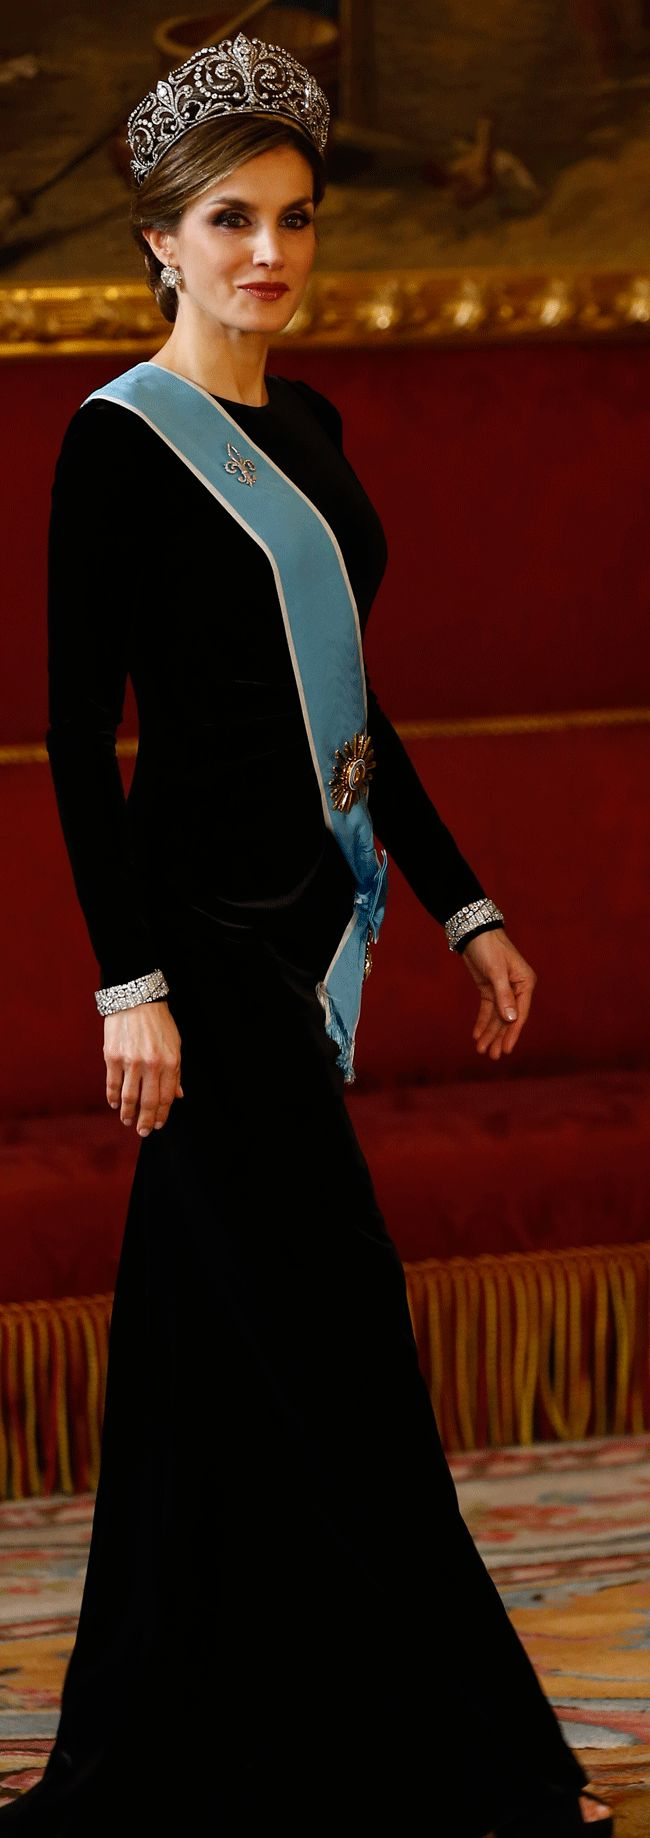 Queen Letizia of Spain                    February 22-23: State Visit from Argentina